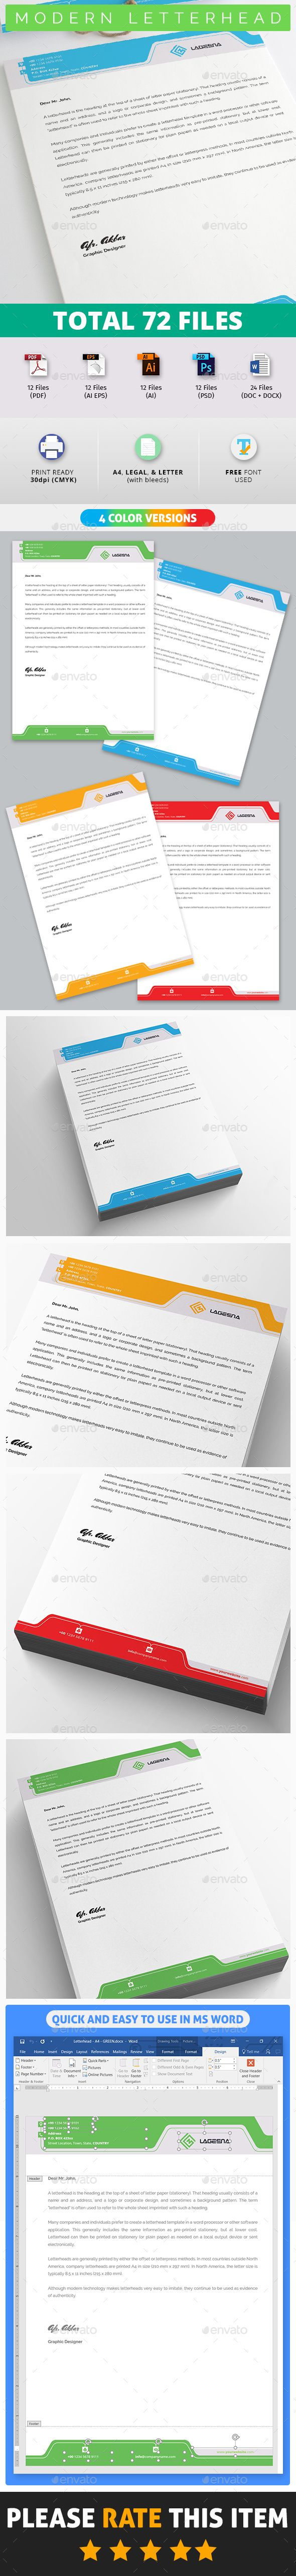 8 best letterhead design images on pinterest letterhead template fancy letterhead template stationery print design download here spiritdancerdesigns Choice Image